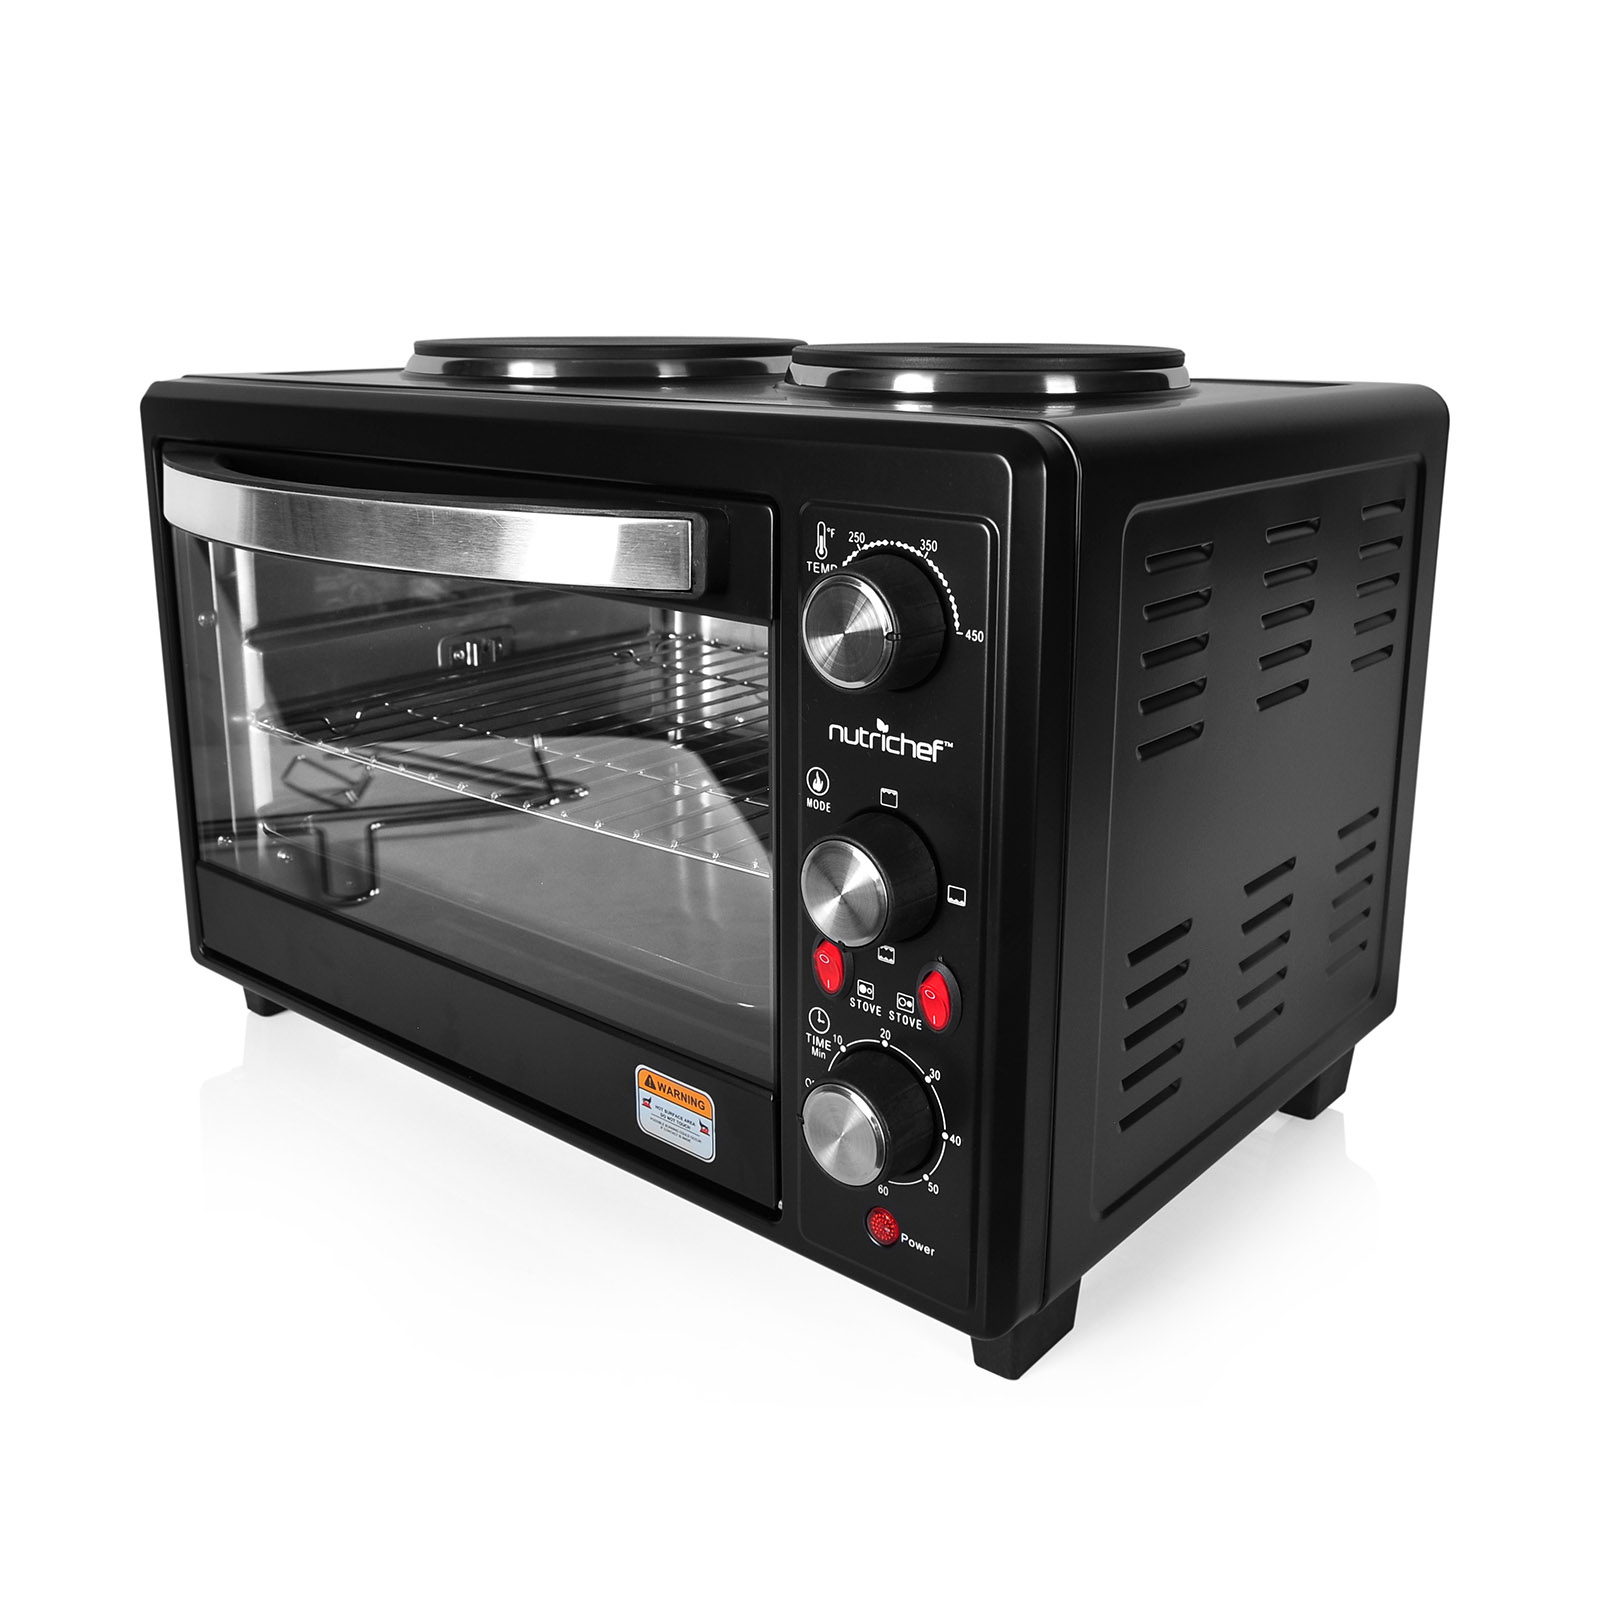 NutriChef Multifunction Kitchen Oven, Countertop Rotisserie Cooker with Dual Hot Plates